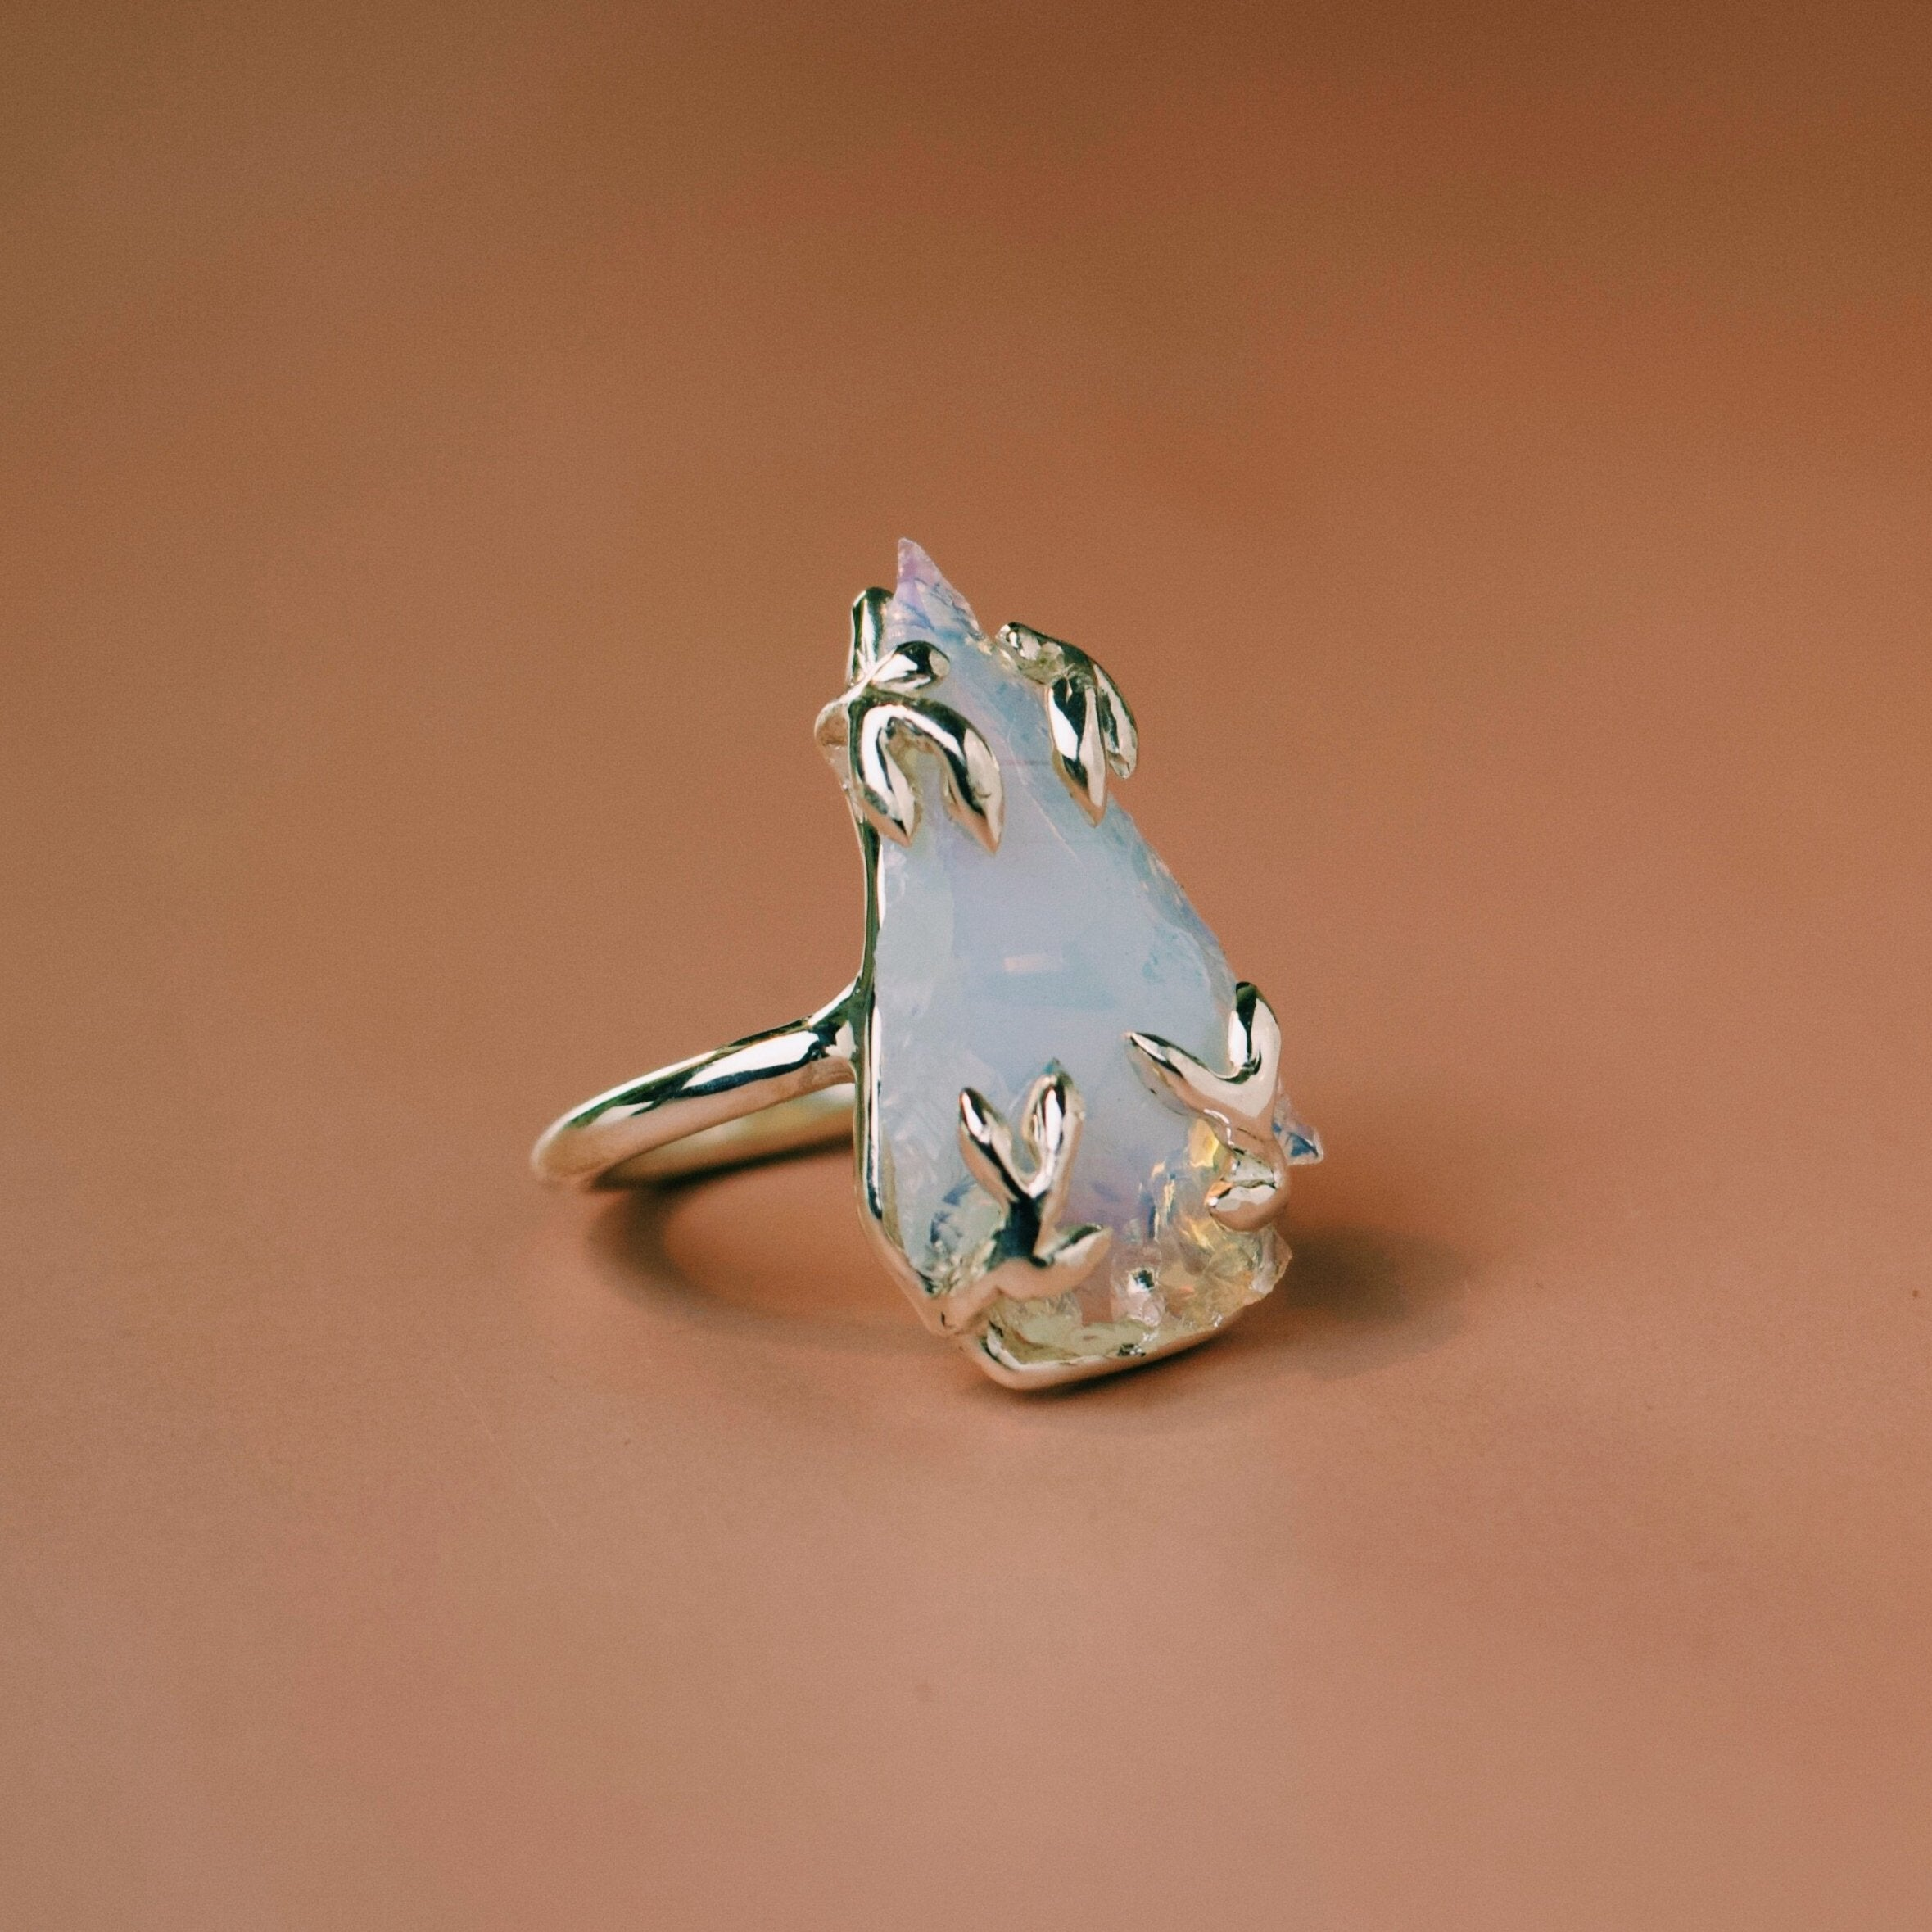 'Sorrel' Opalite Arrowhead Ring (Brass, Silver or Yellow, White, Rose Gold) - Ring The Serpents Club